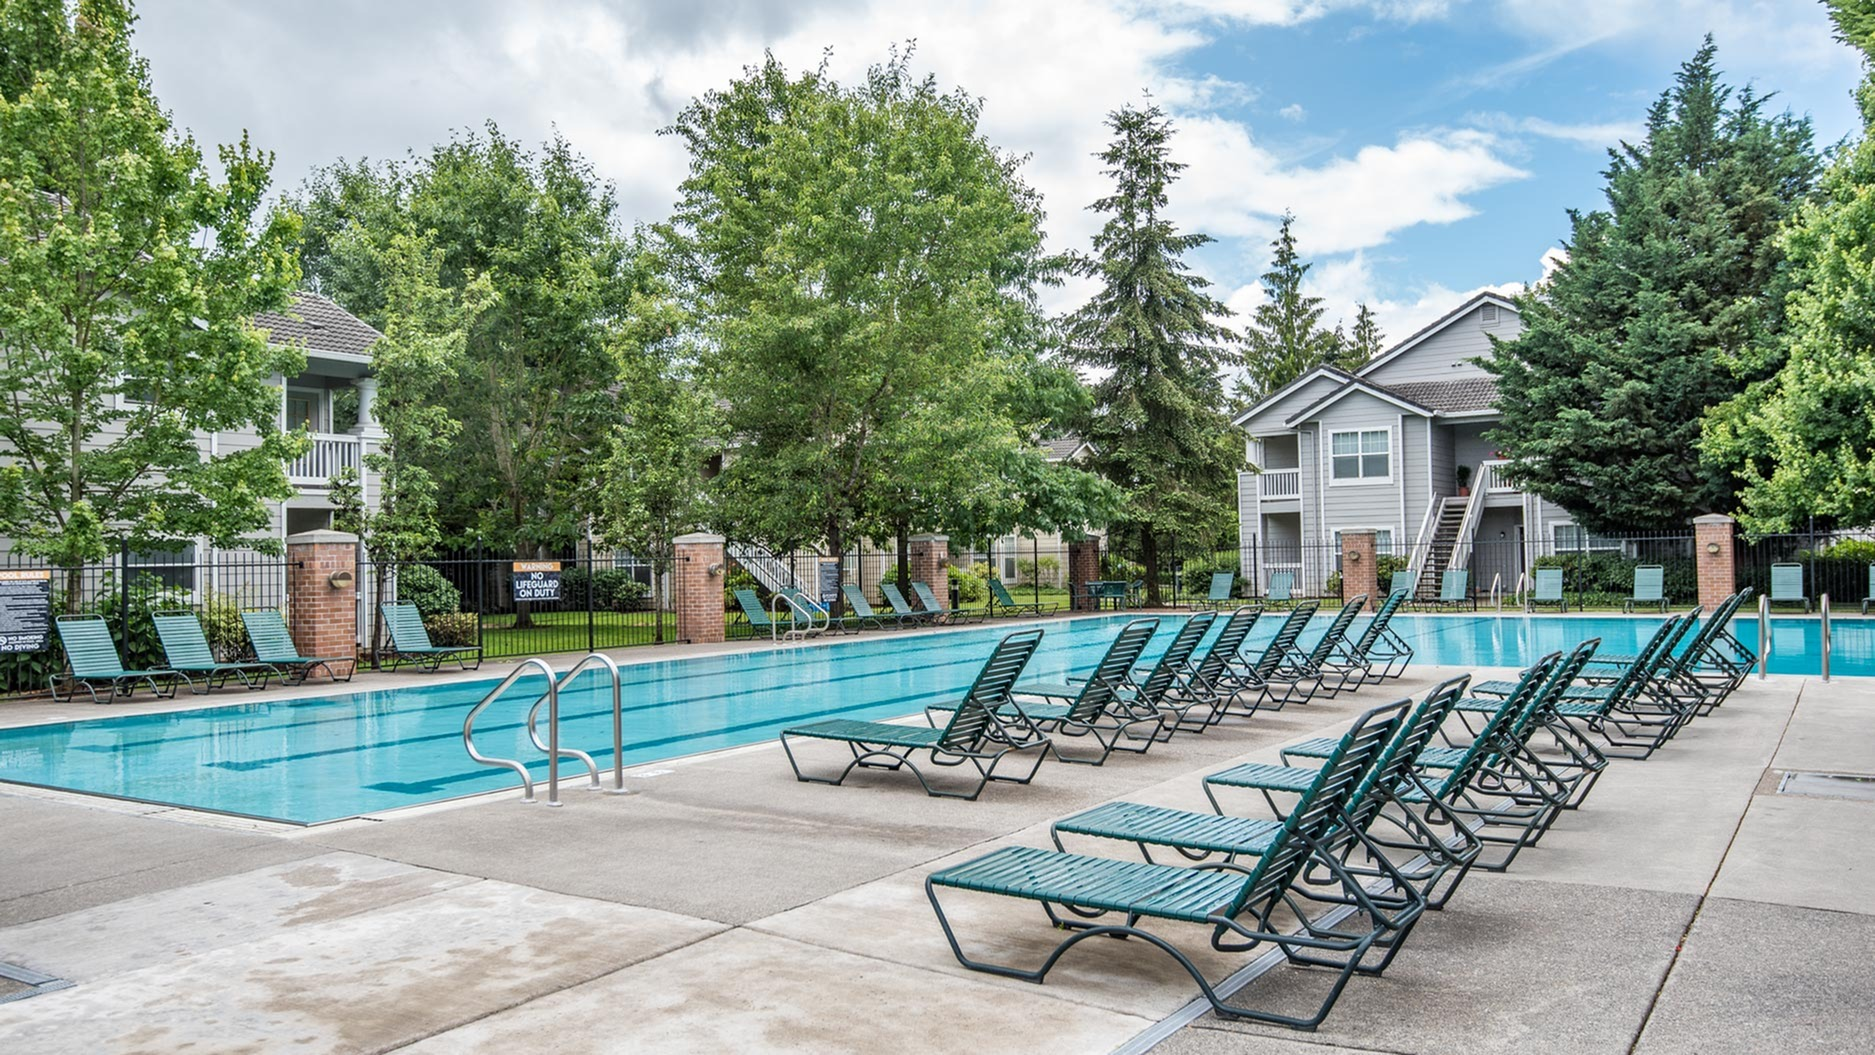 Image of Swimming Pool for Village at Main Street